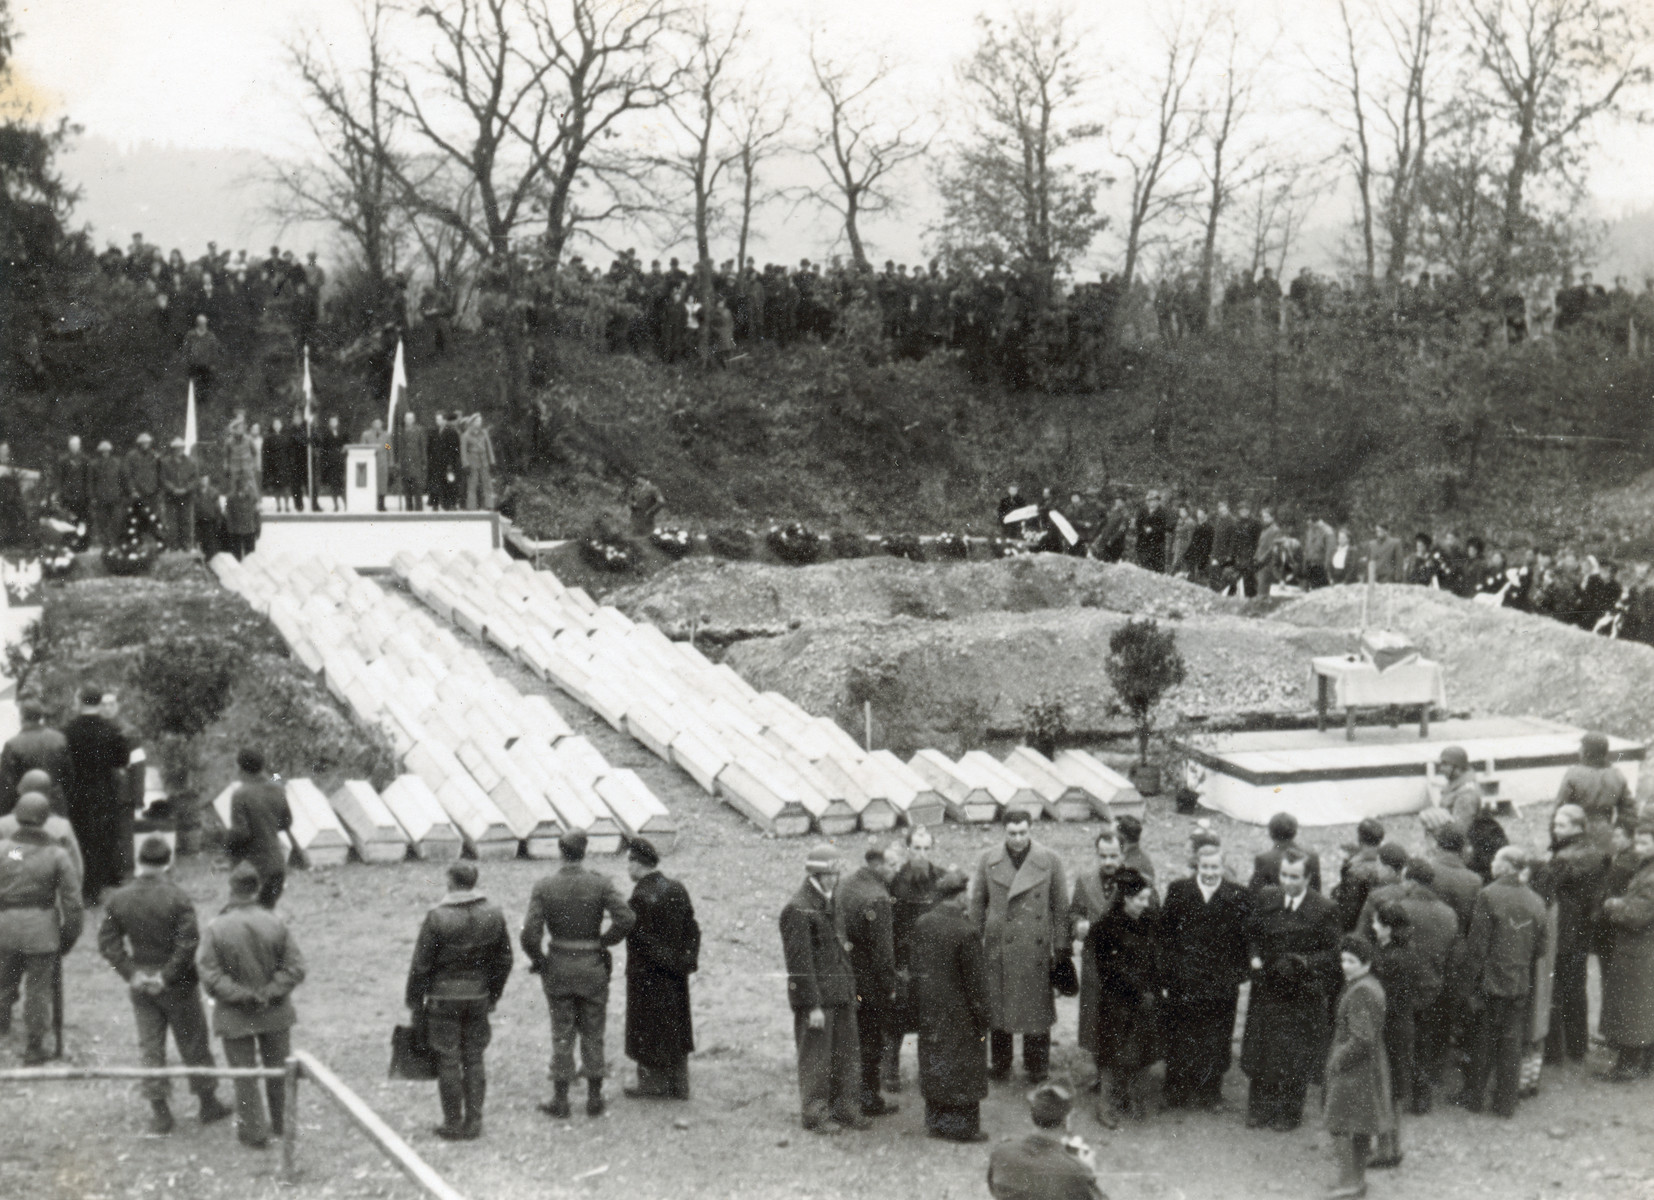 Survivors and American soldiers attend an exhumation and reburial ceremony of the victims of the Pocking concentration camp.